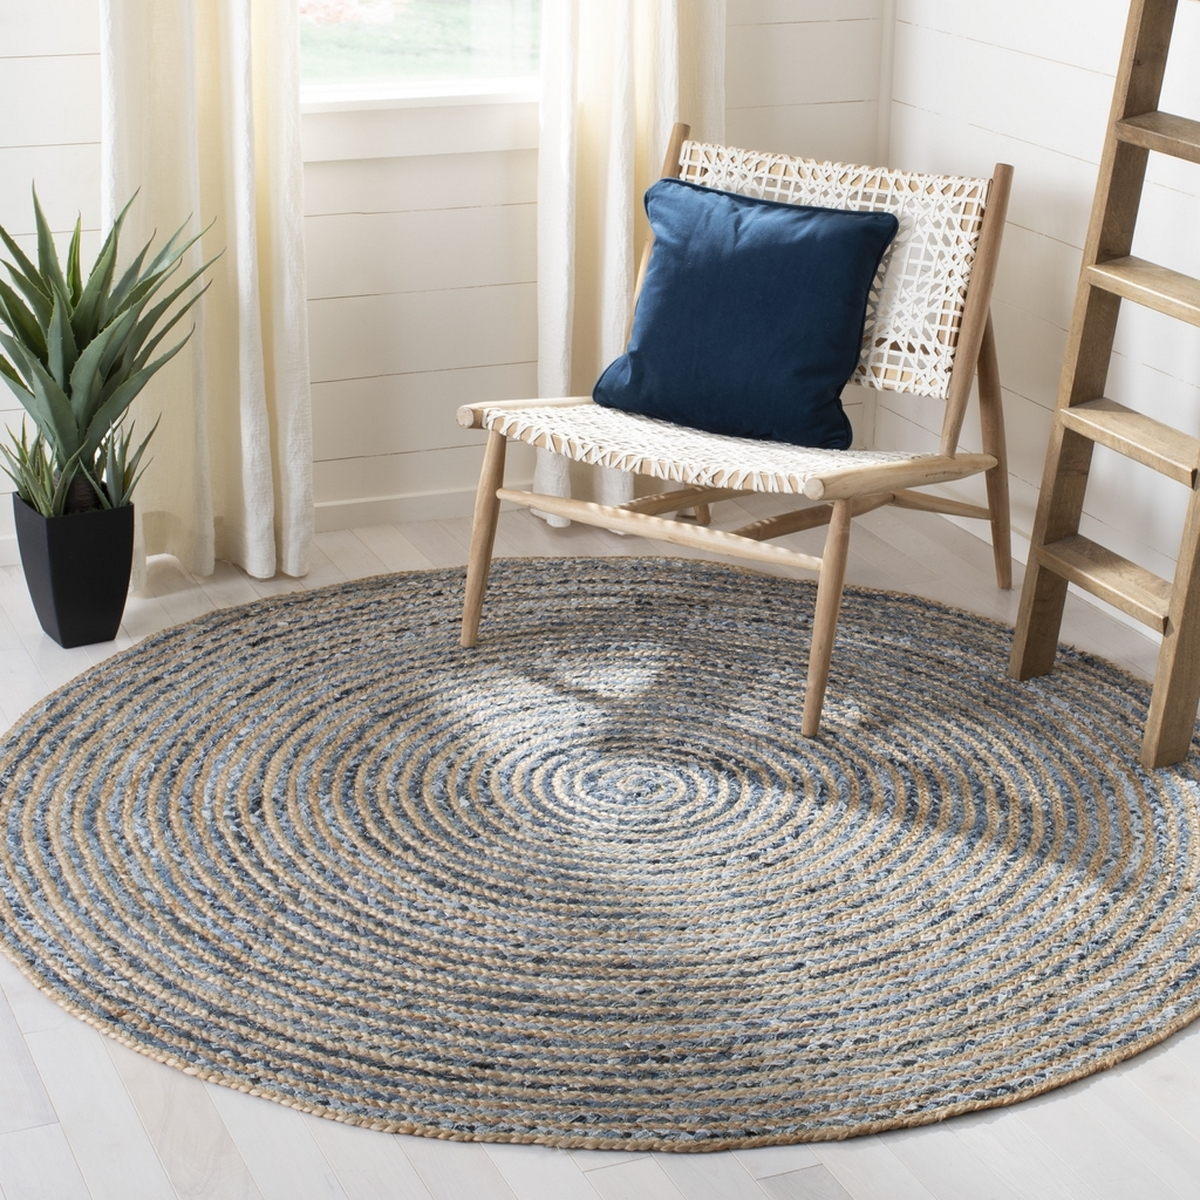 Rug Cap250a Cape Cod Area Rugs By Safavieh